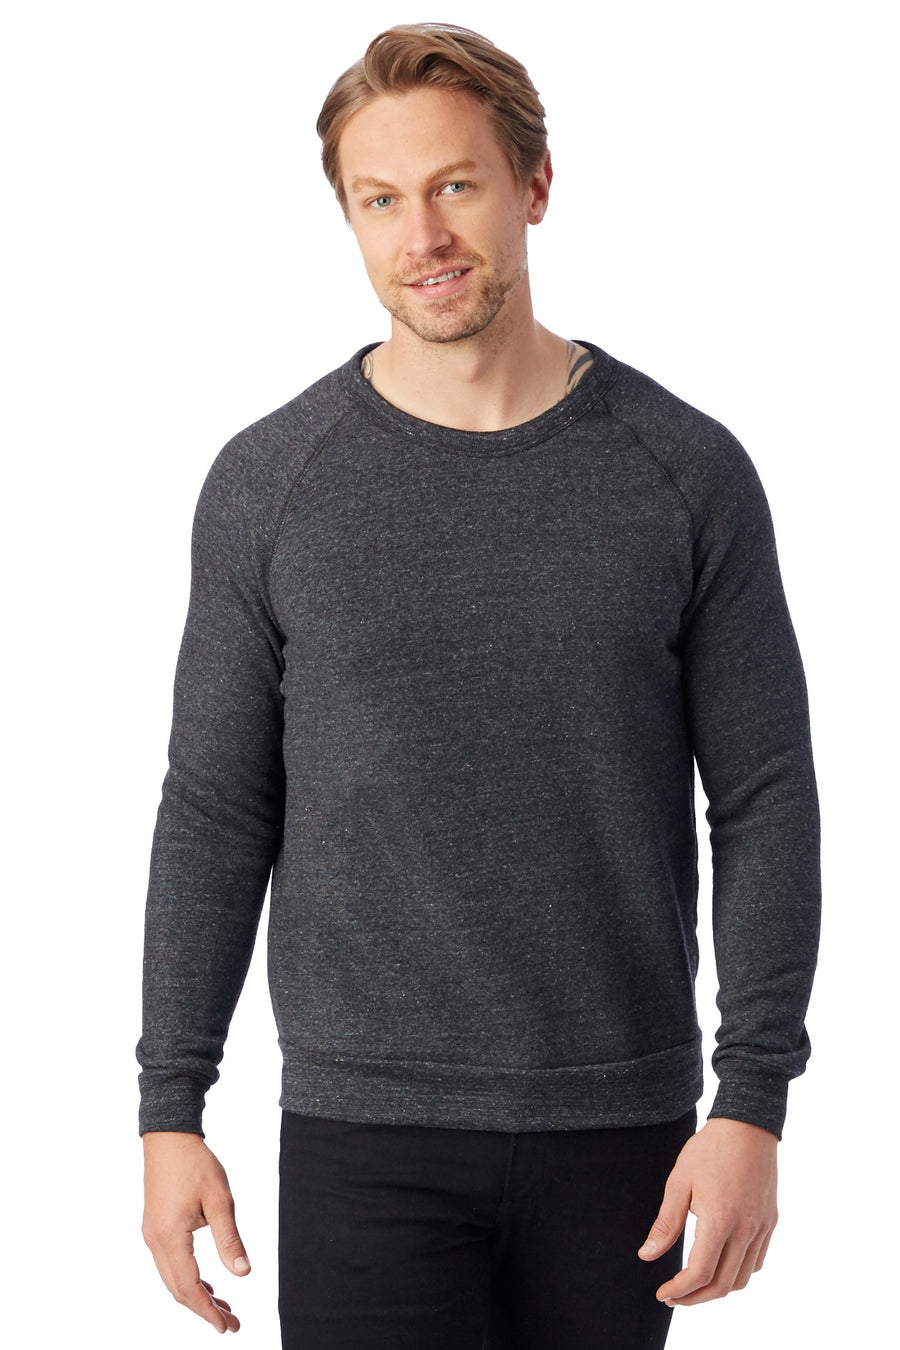 Champ Eco-Fleece Sweatshirt - Eco Black - Pavilion